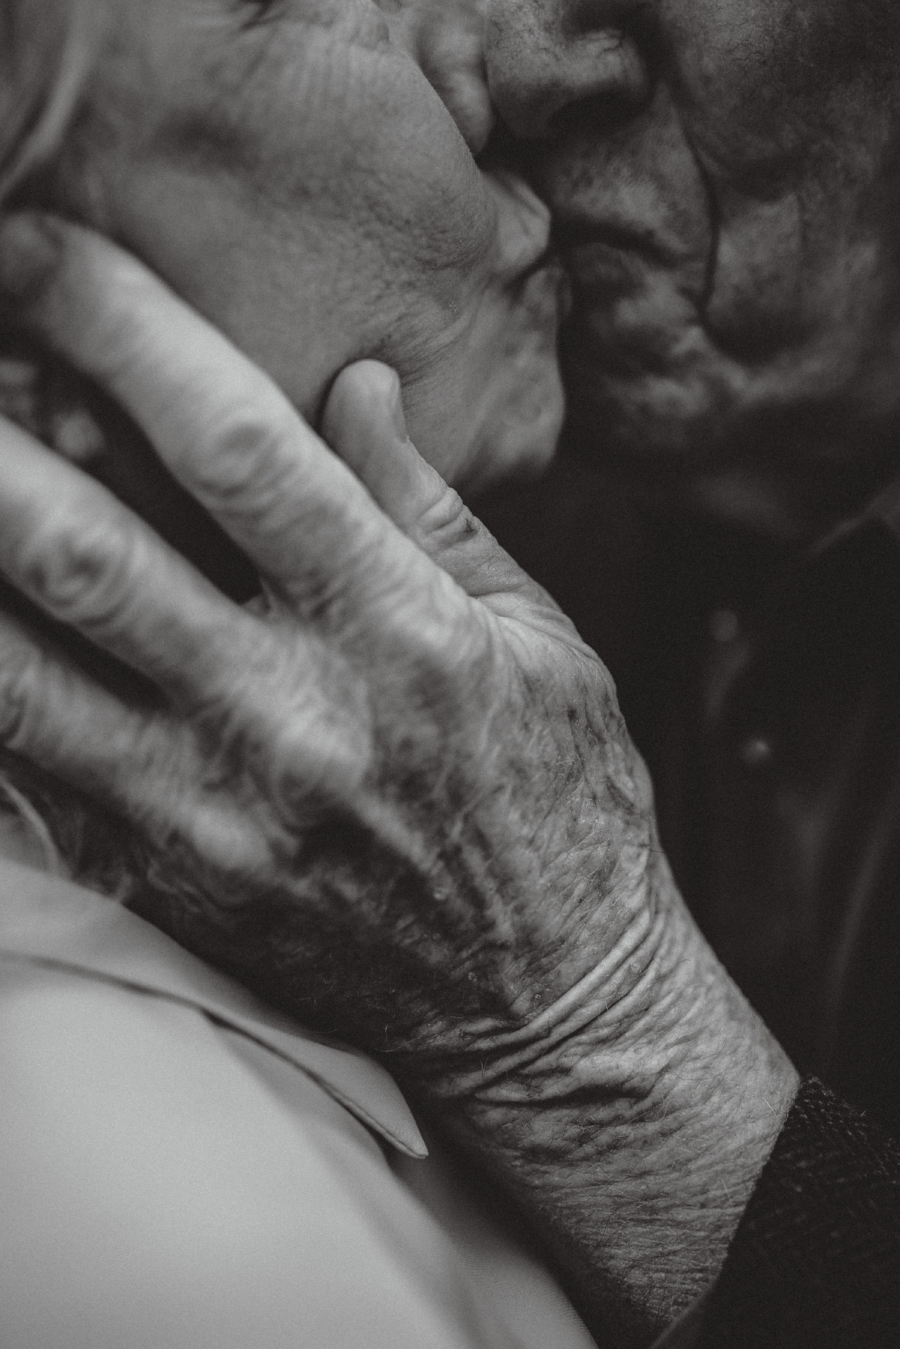 dark and moody romantic photo in black white of elderly couple grandparents kissing close up